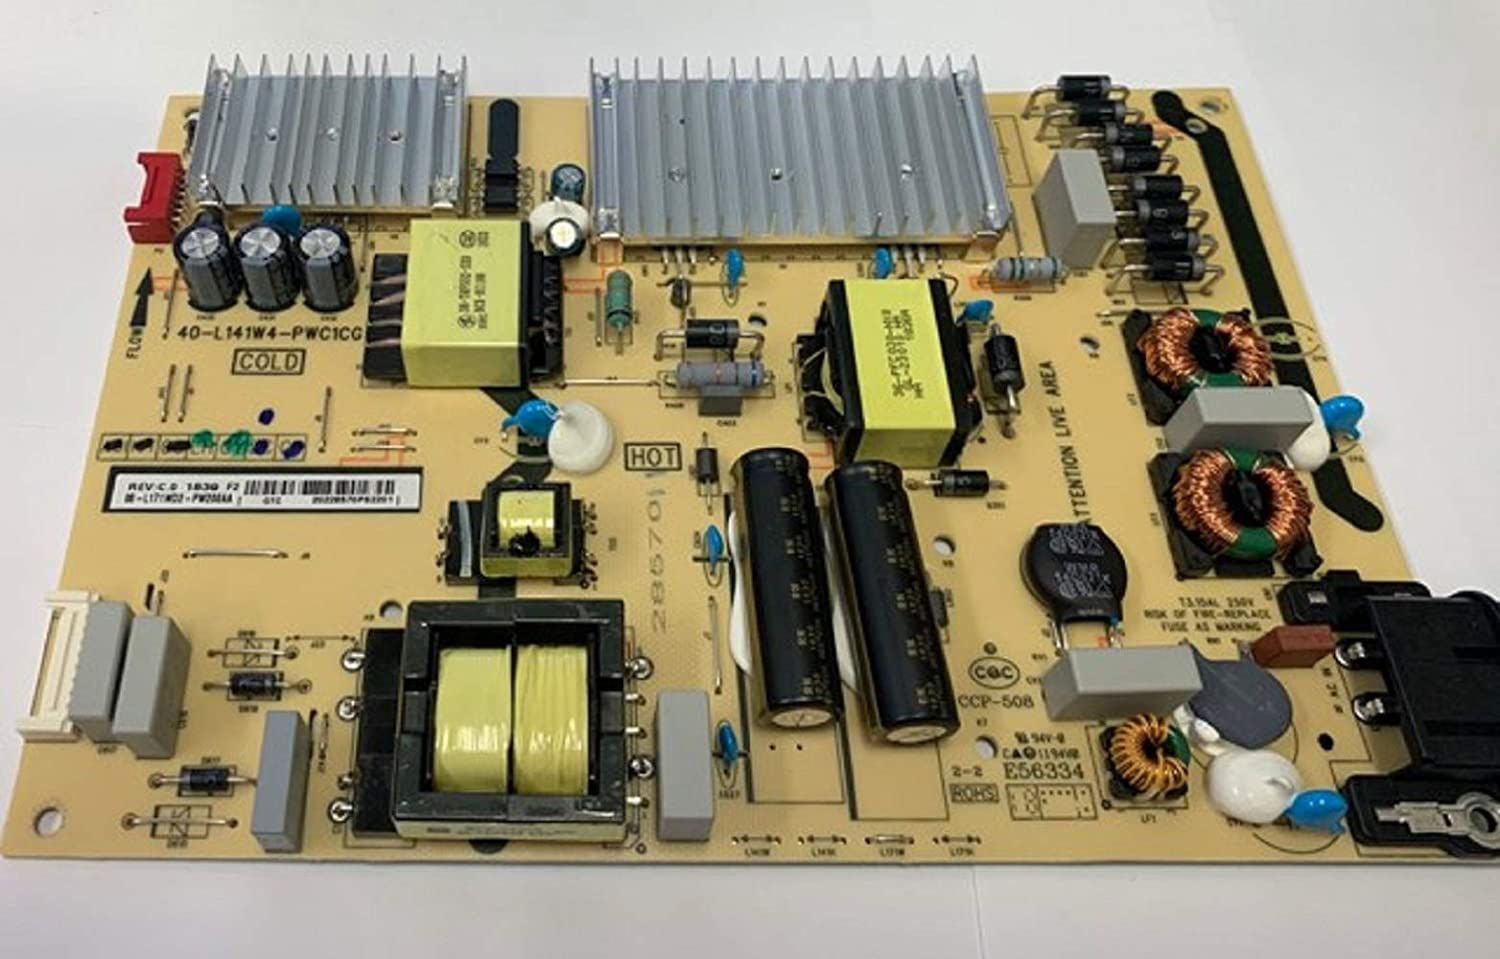 Power Supply Board 08-L171WD2-PW200AA 40-L141W4-PWC1CG for Model 65s421